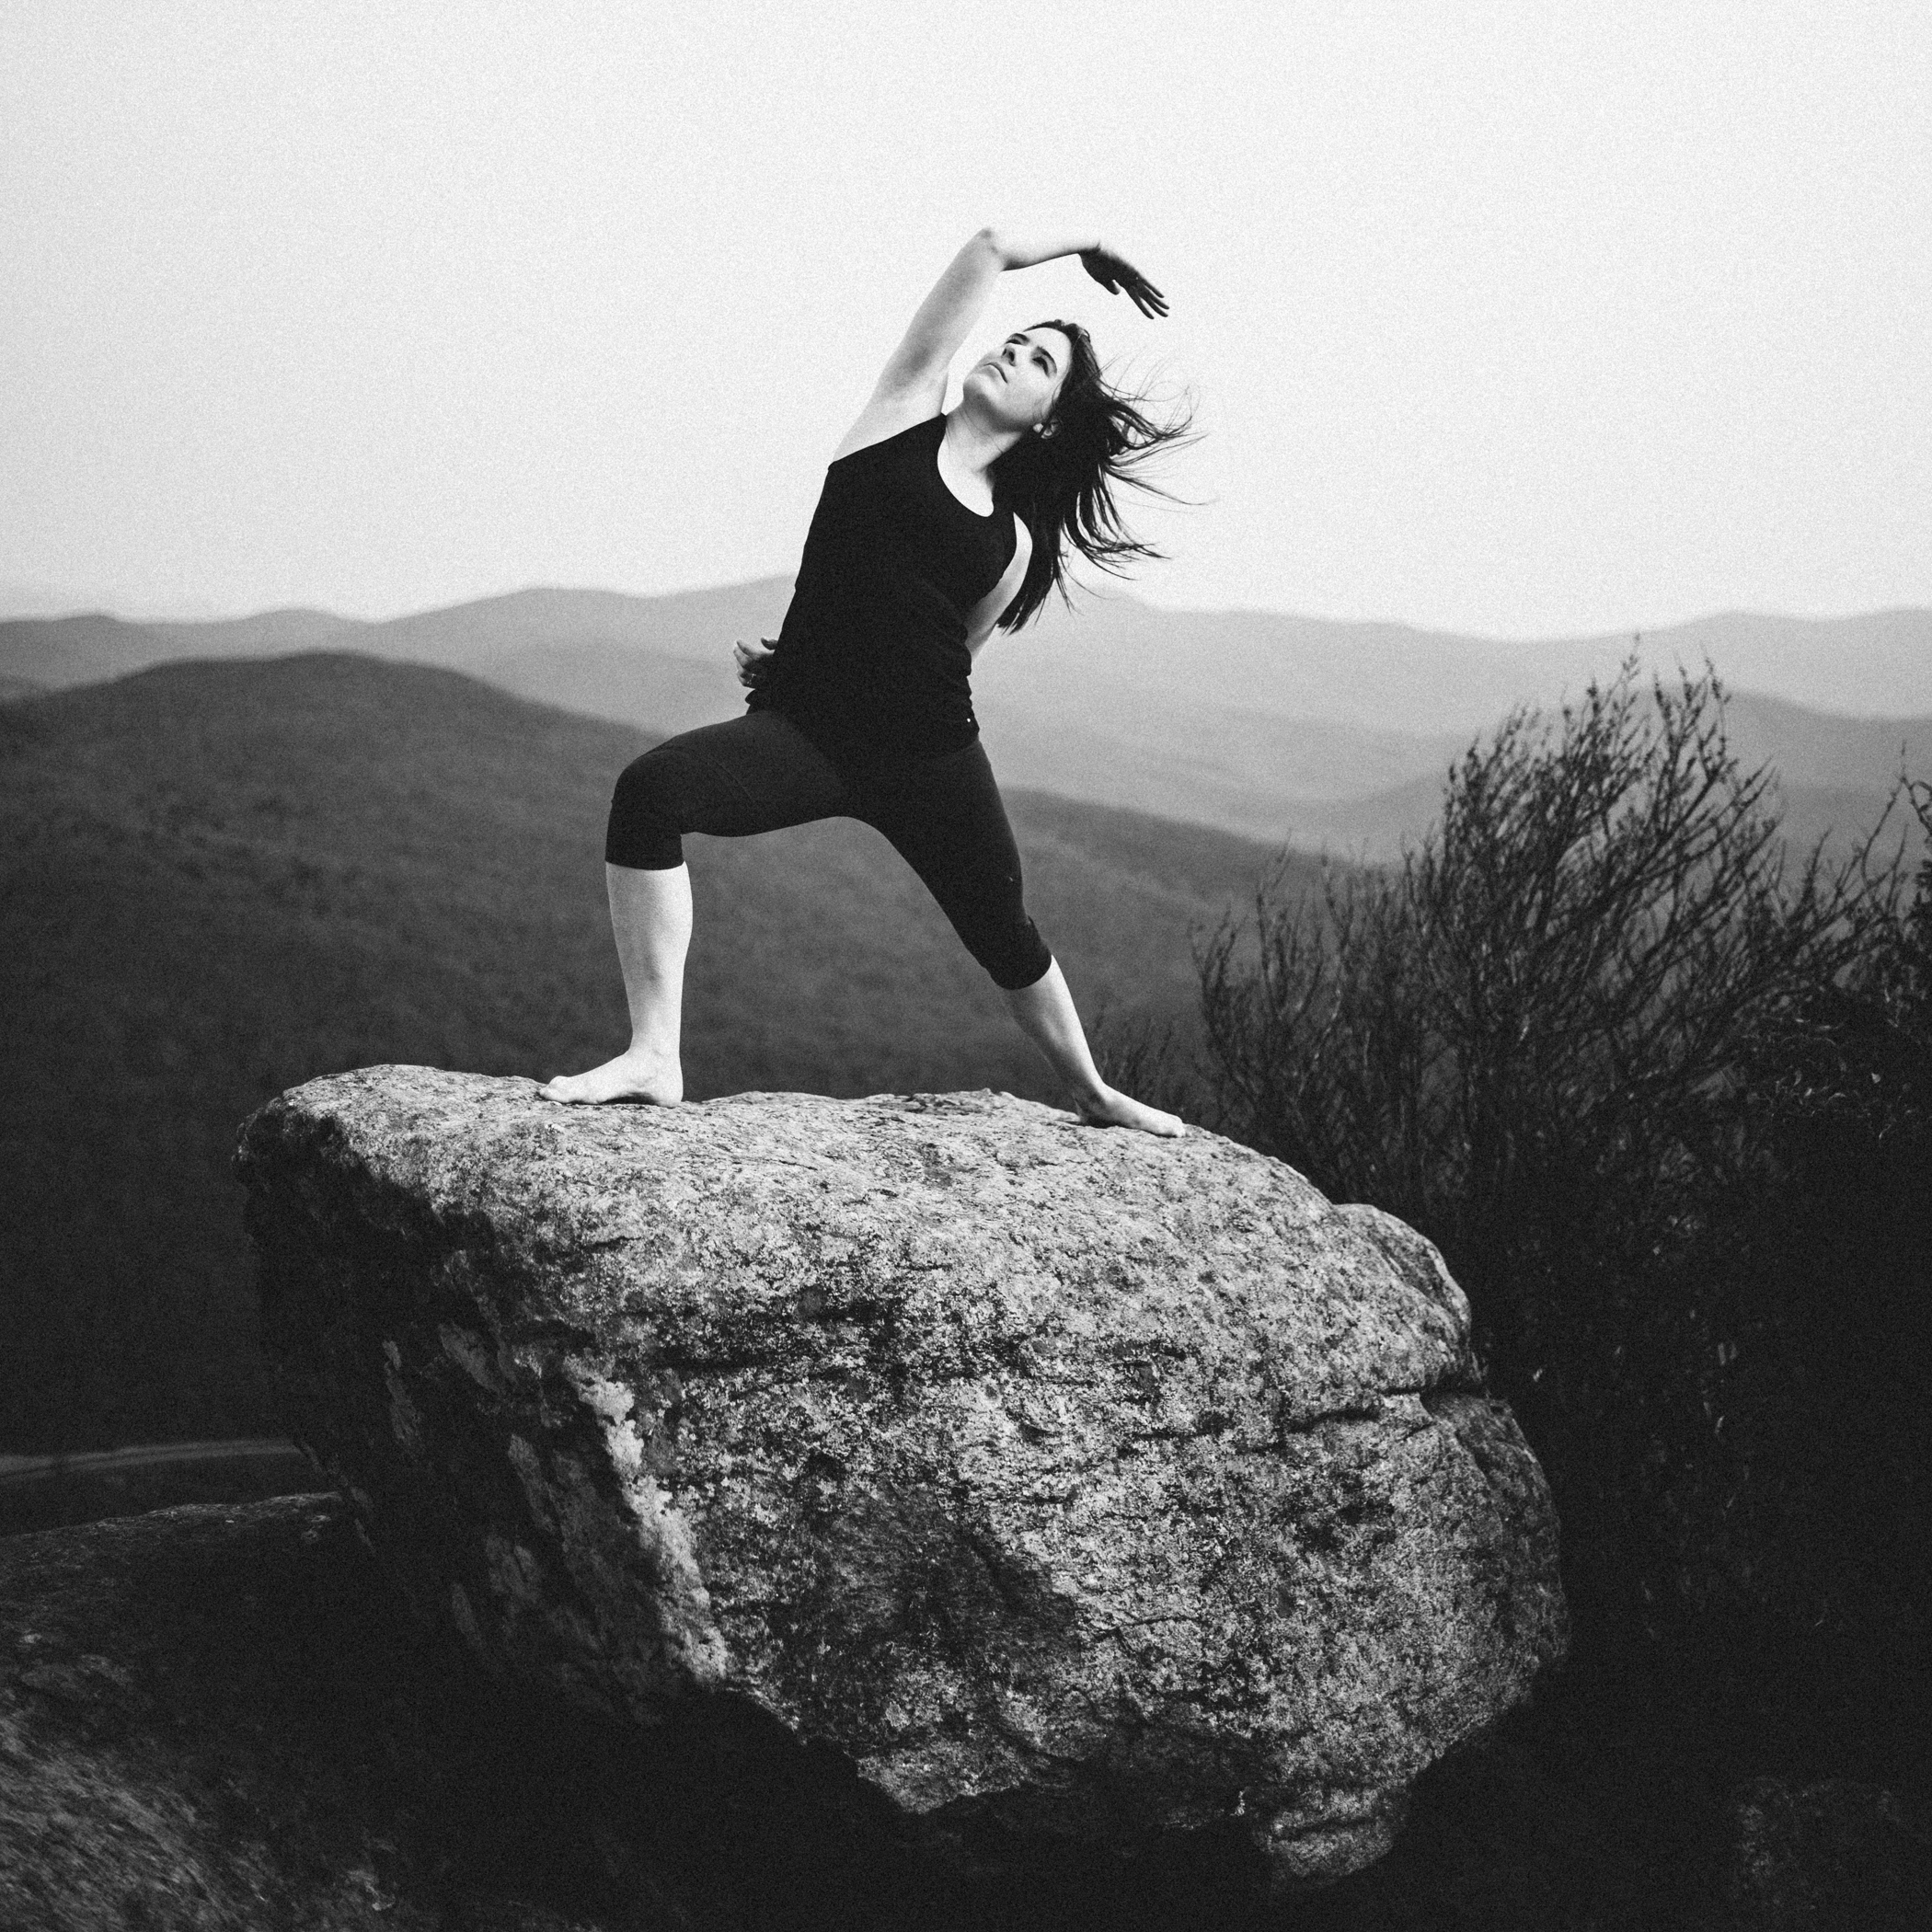 Yoga+Mountain+Top+Yoga+Portraits+at+Shenandoah+National+Park_7.jpg